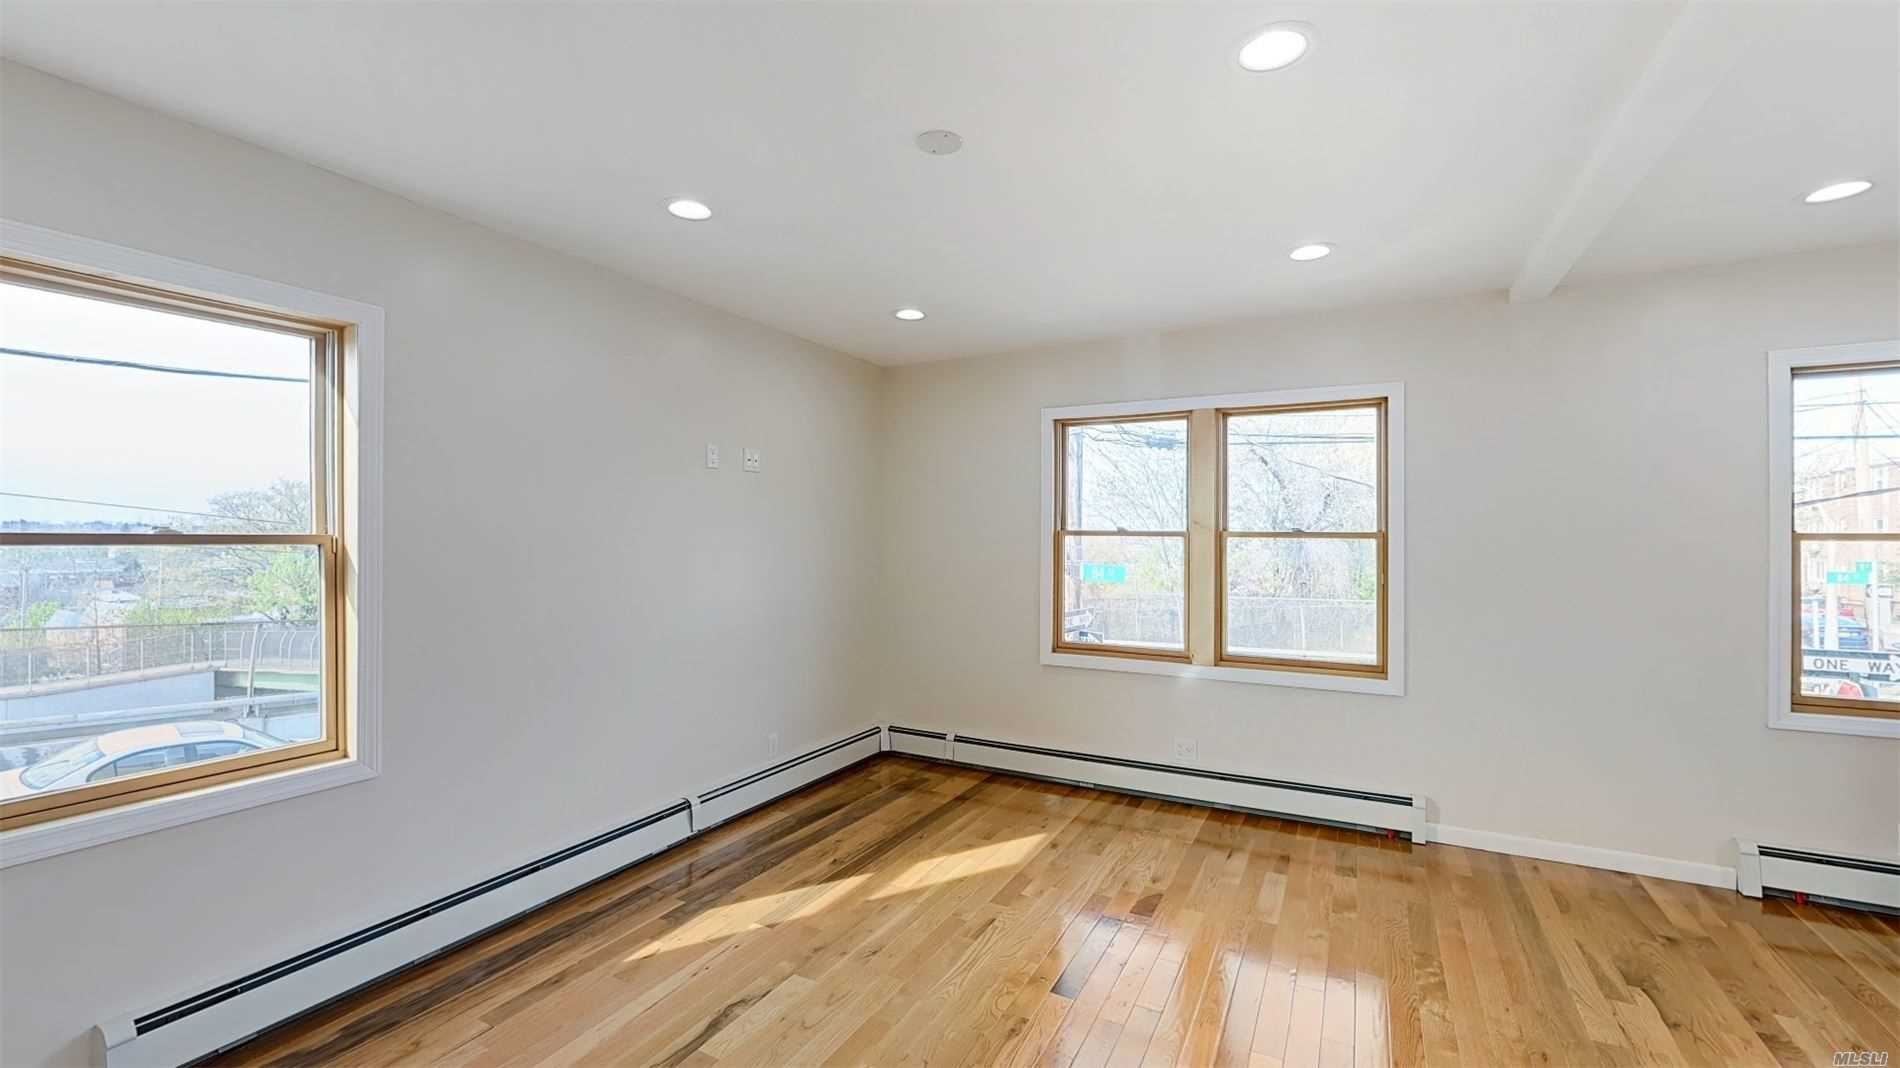 58-02 84th Street, Middle Village, NY 11379 - MLS#: 3217681